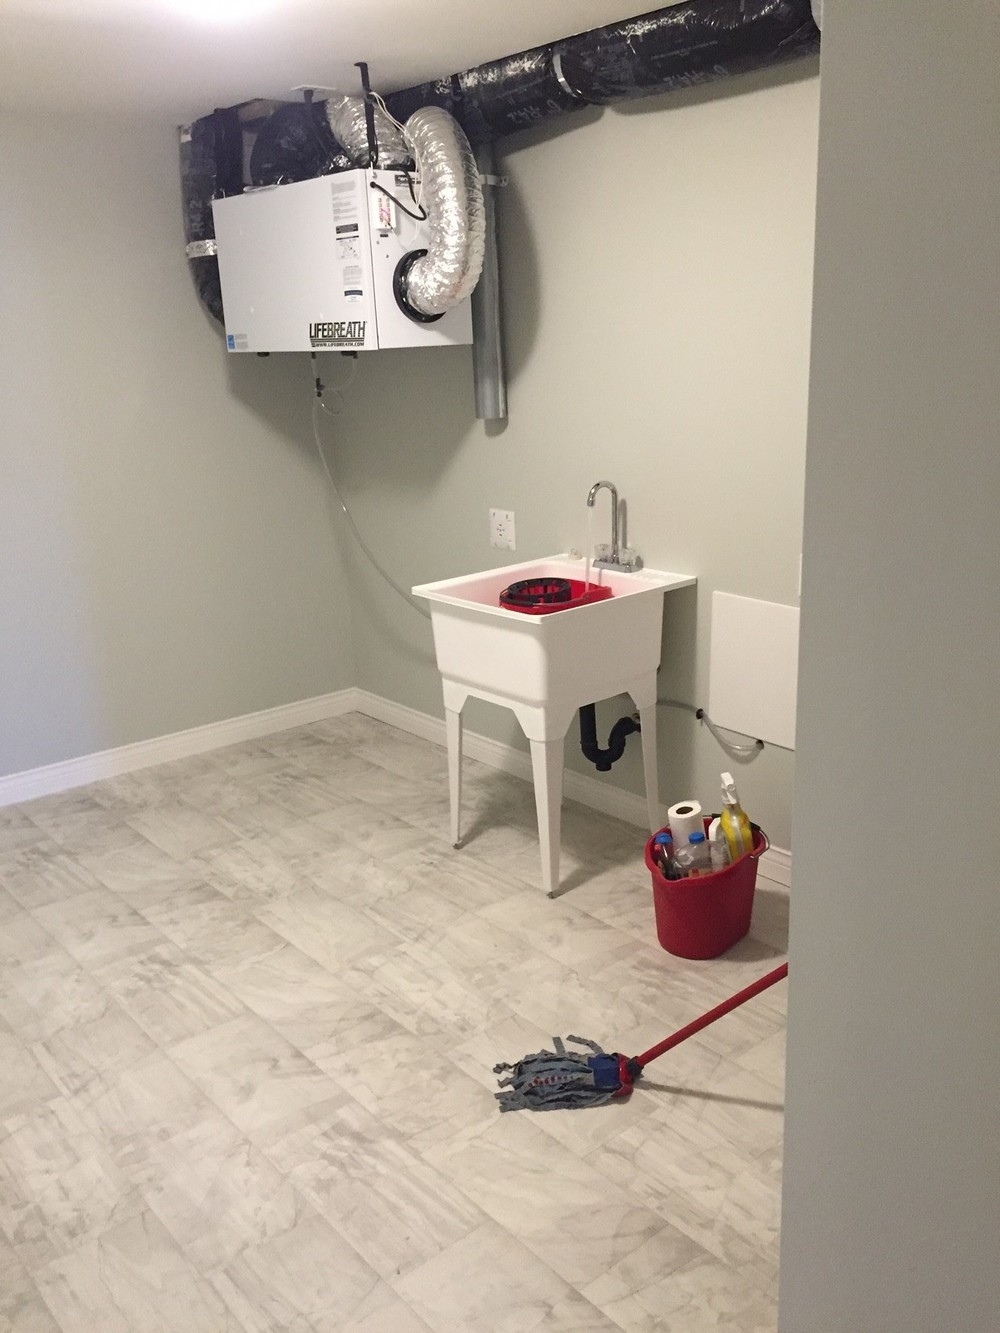 Brand new area for washer and dryer and a new HRV to ensure the home is running efficiently.